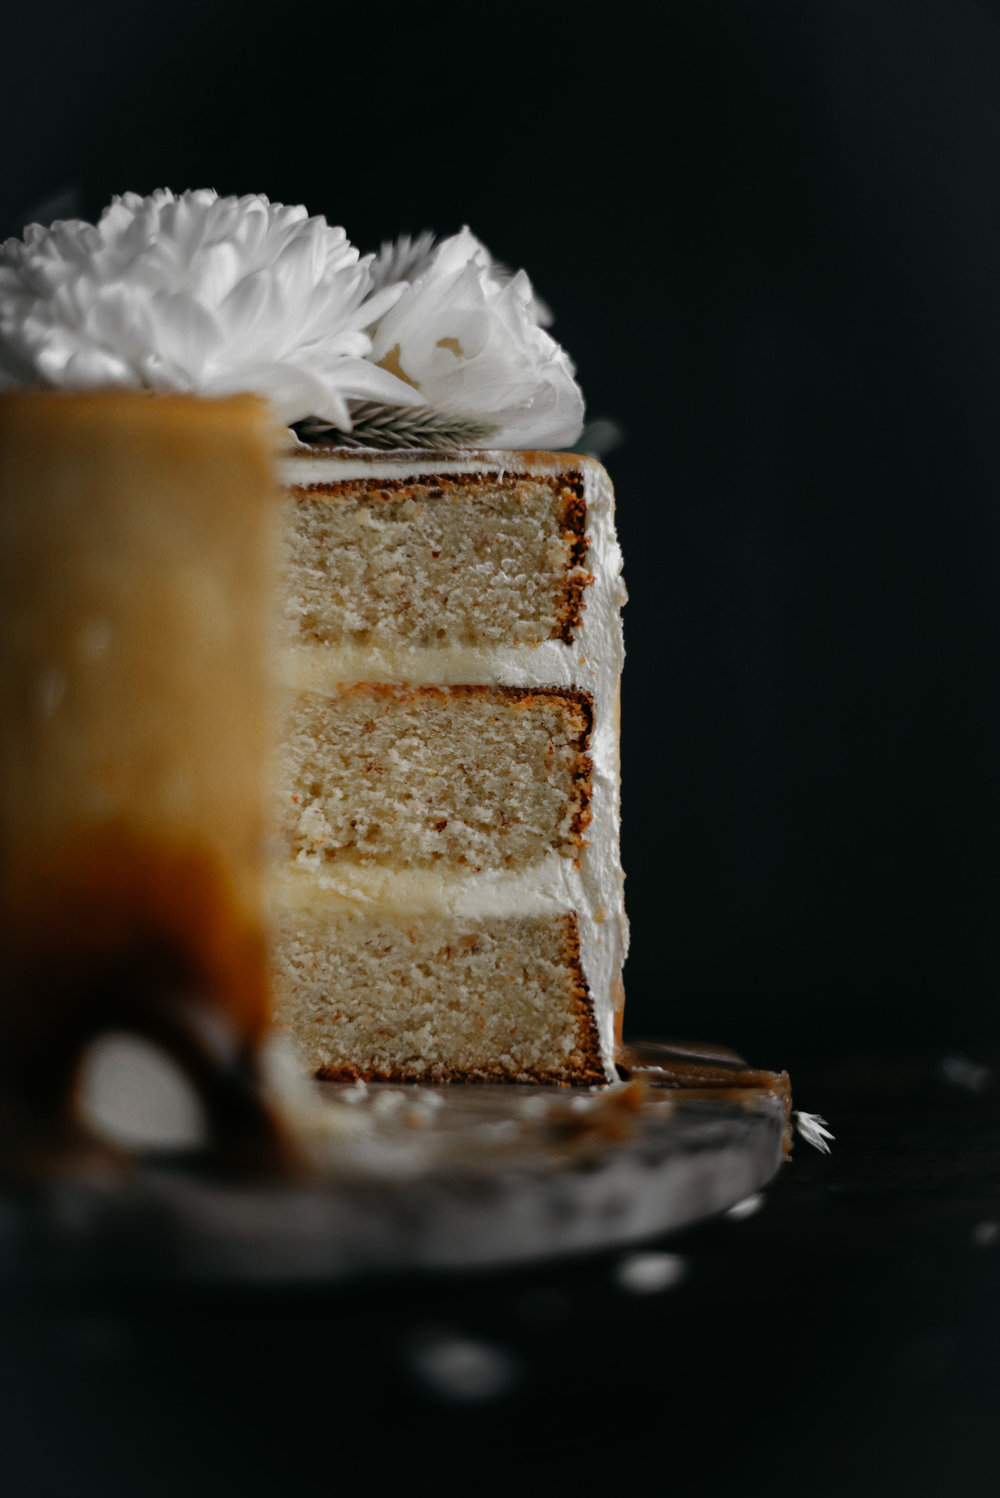 Italian-Orange-Blossom-and-Almond-Cake-with-Orange-Curd-Mascarpone-Swiss-Meringue-Buttercream-and-Fleur-d'Oranger-Caramel-13.jpg